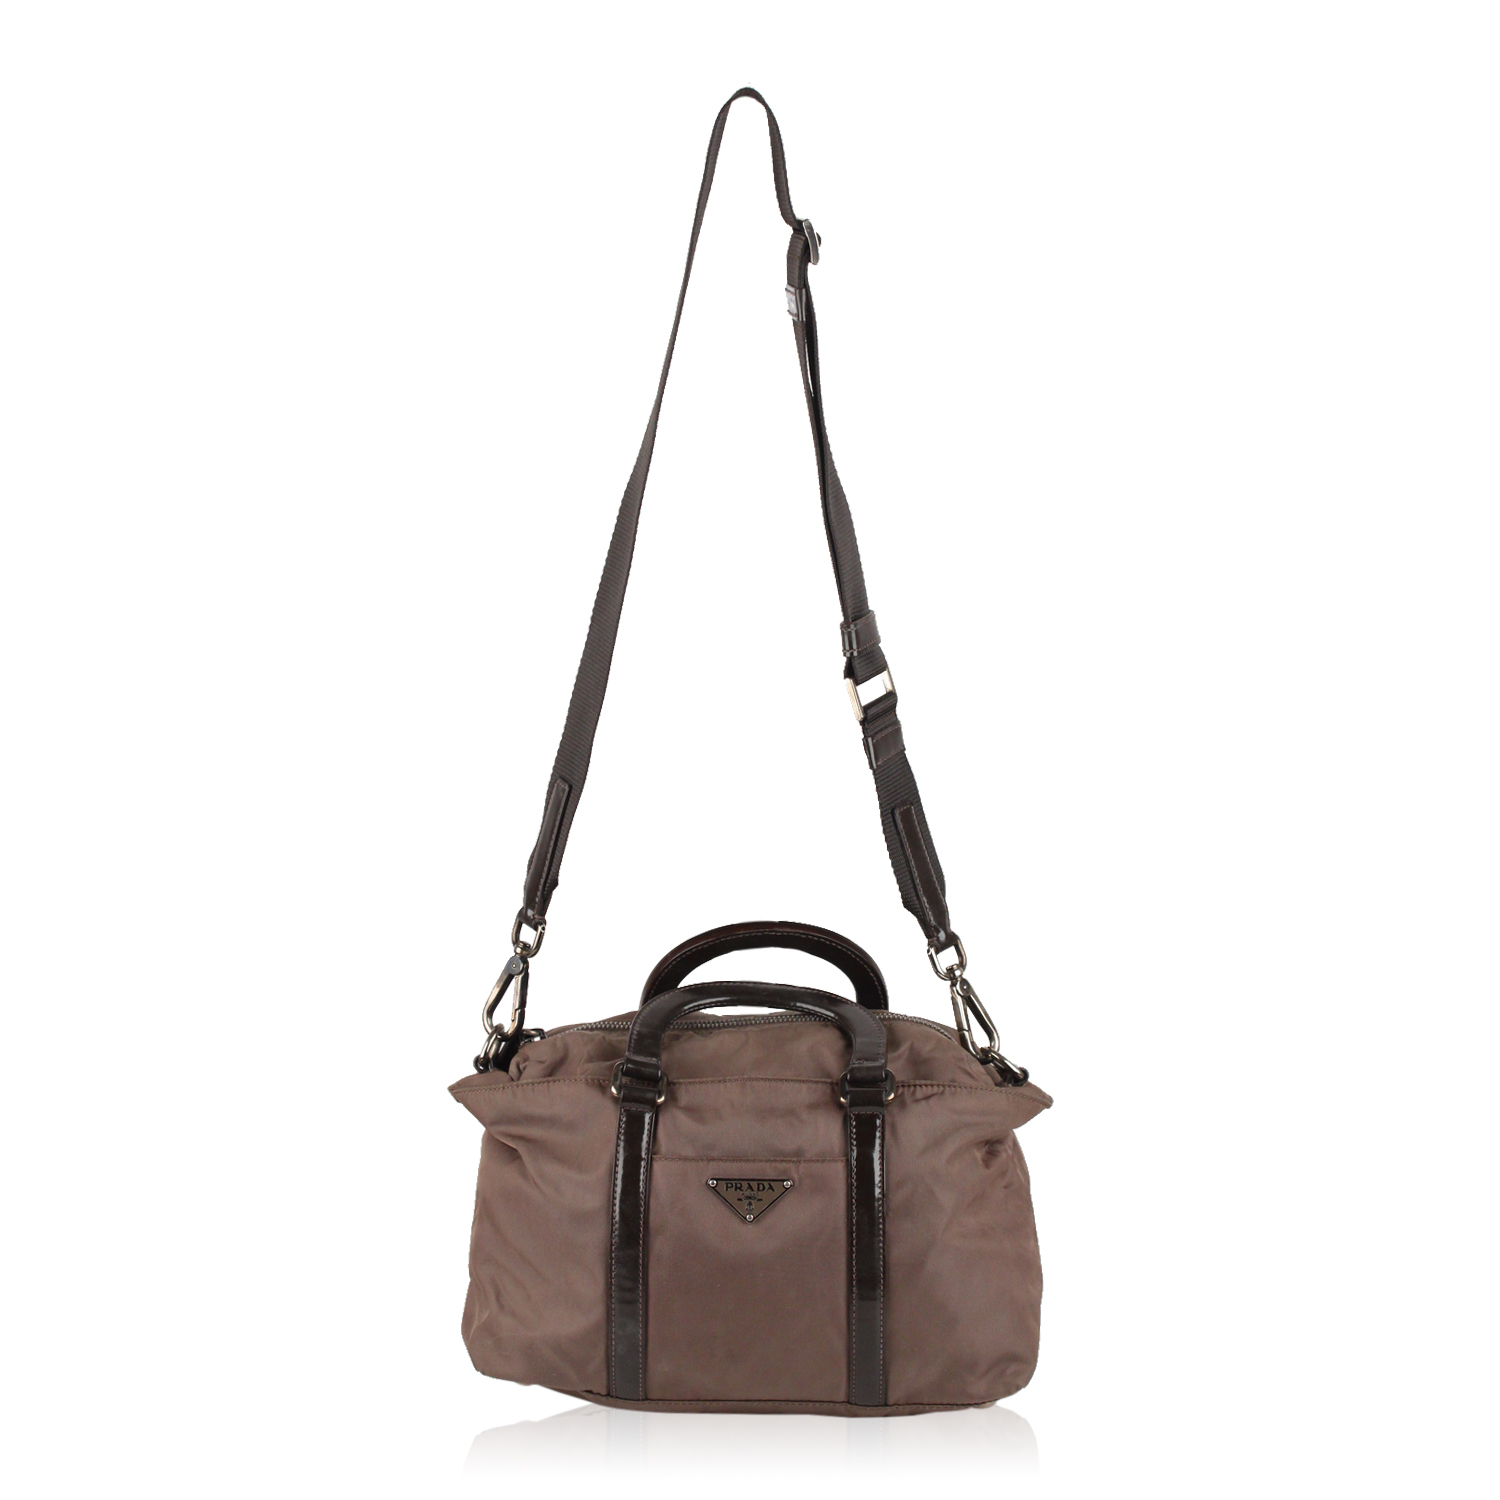 a3d9adf8defc PRADA taupe Satchel bag in Nylon  Vela  canvas with leather trim and  handles. It features front and rear open pockets